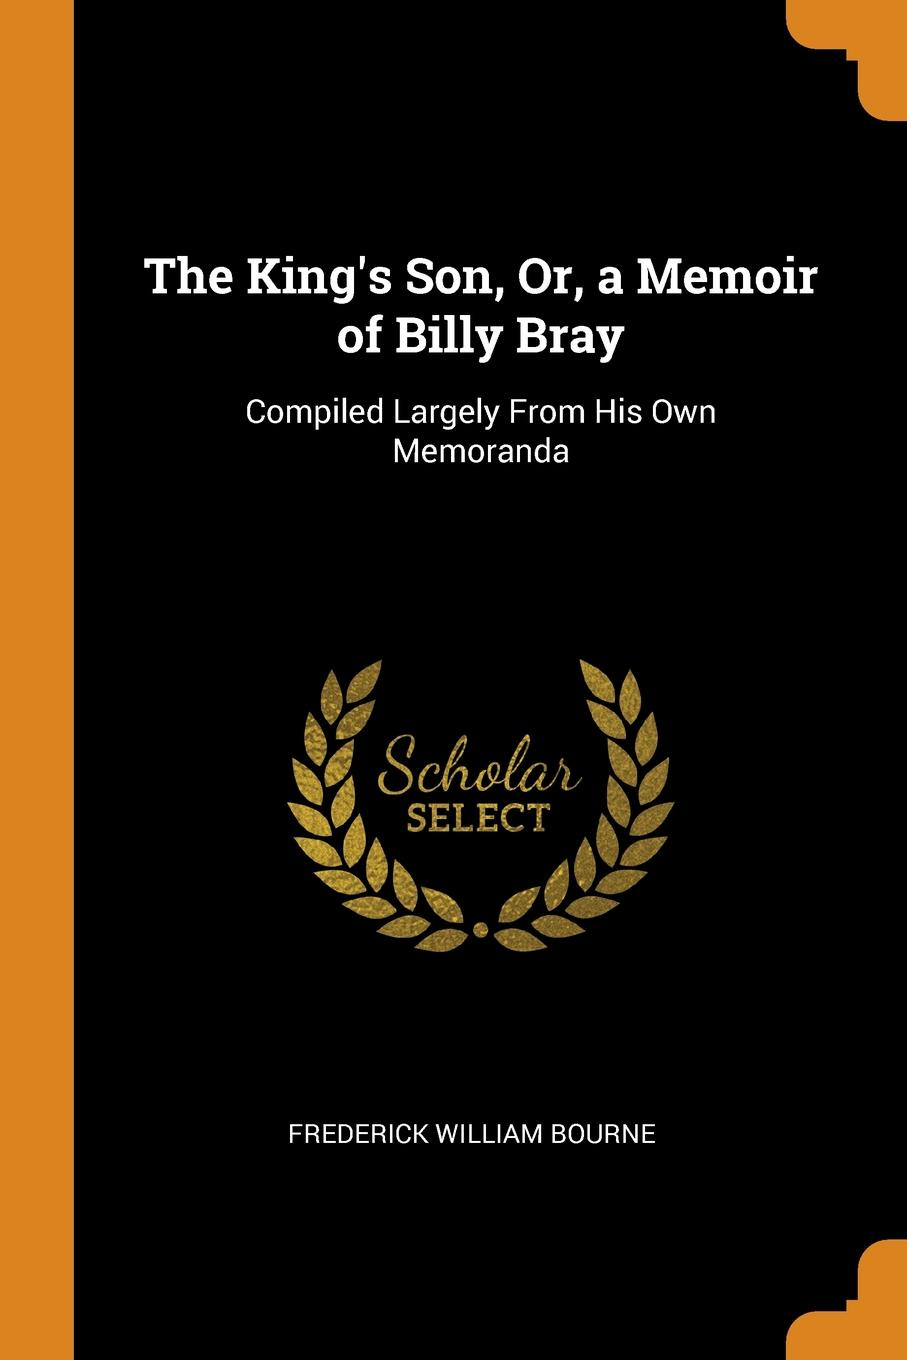 Frederick William Bourne The King.s Son, Or, a Memoir of Billy Bray. Compiled Largely From His Own Memoranda